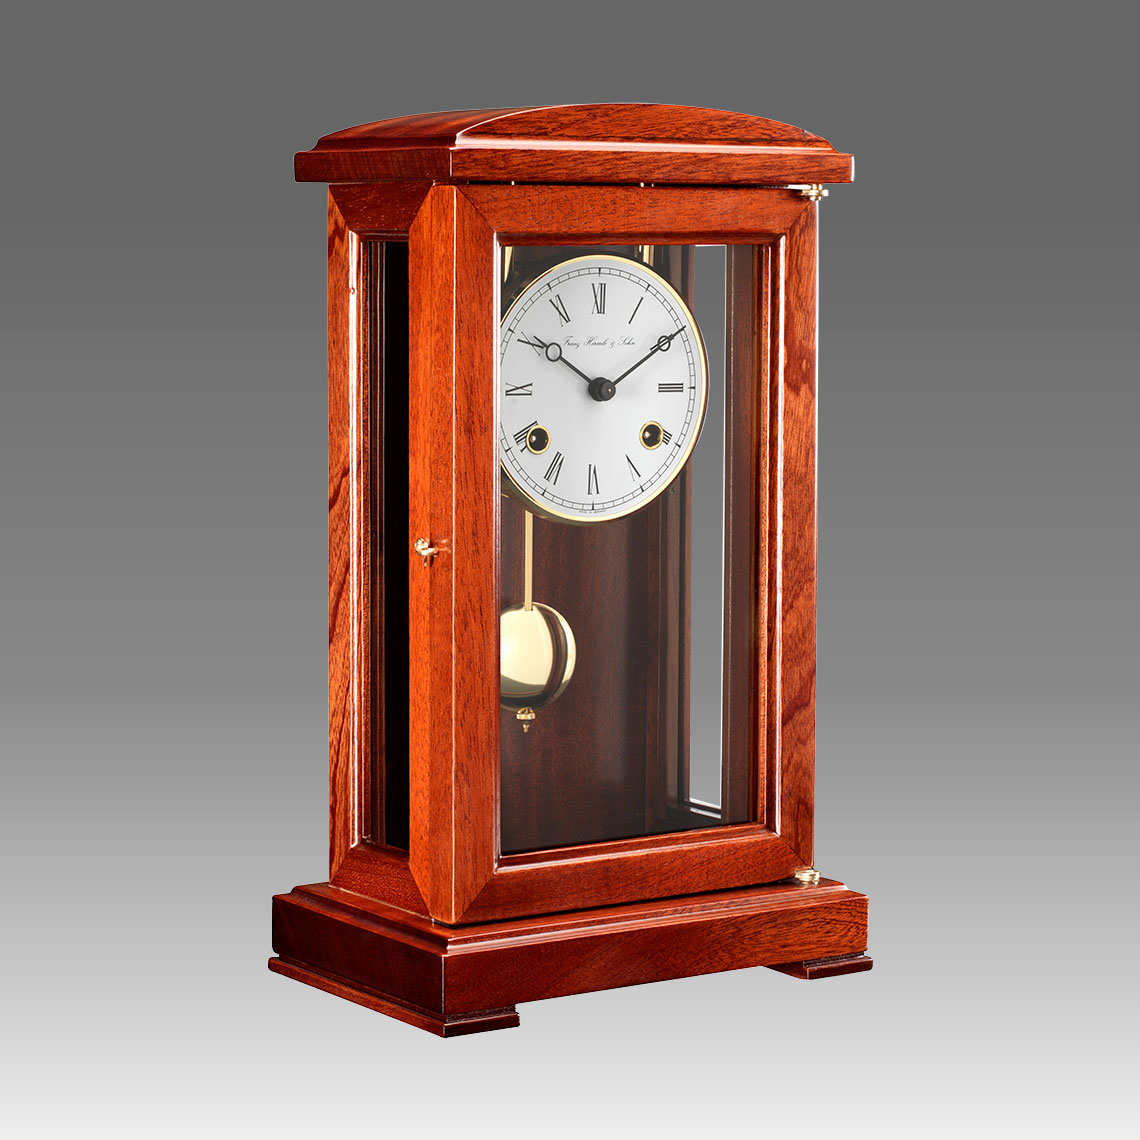 Mante Clock, Table Clock, Cimn Clock, Art.322/2 lacquered light ivory - Bim Bam melody on Bells, white round dial